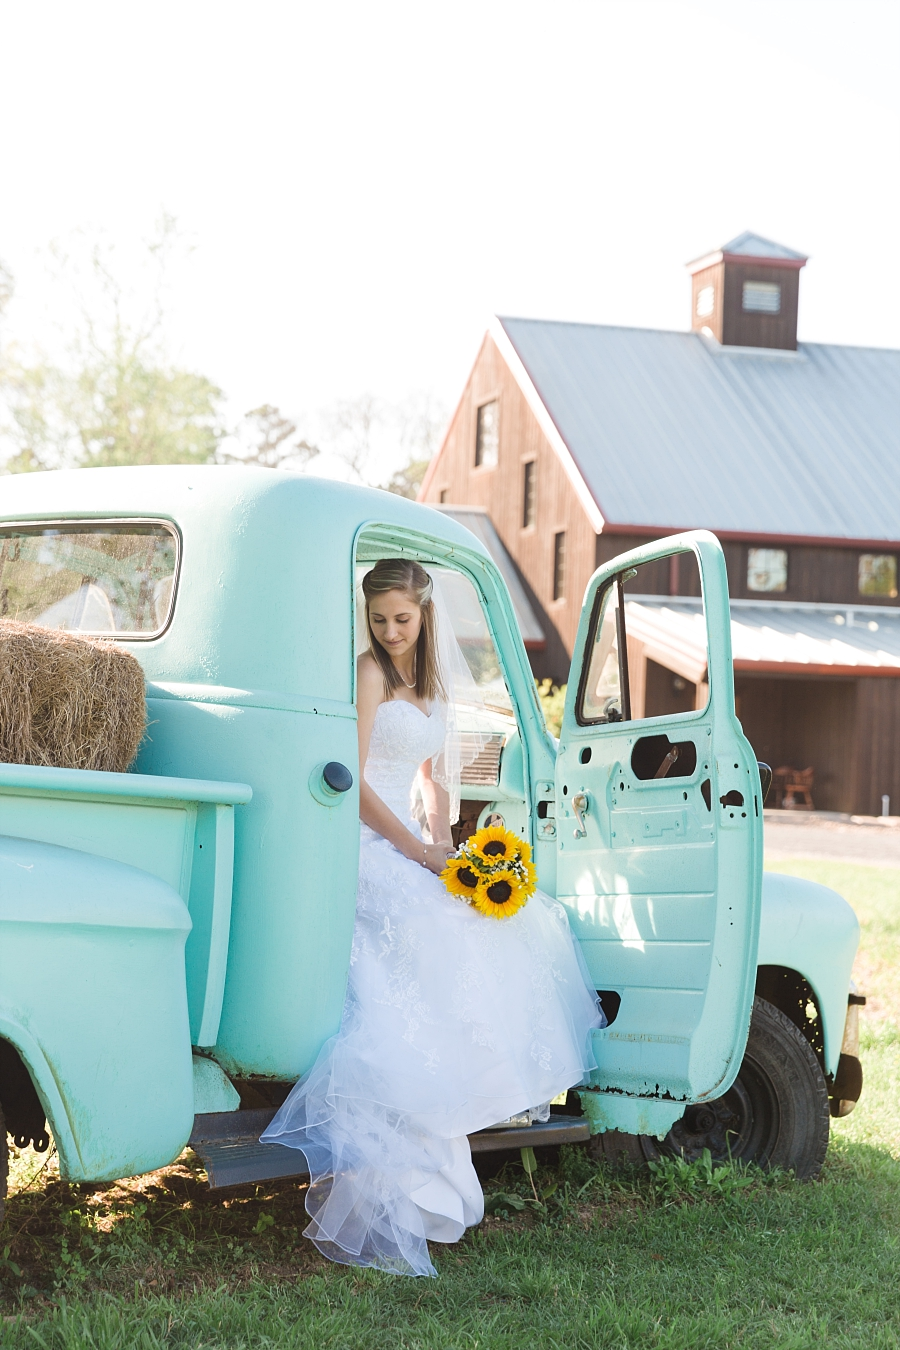 Stacy-Anderson-Photography-Carriage-House-Houston-Wedding-Photographer_0019.jpg